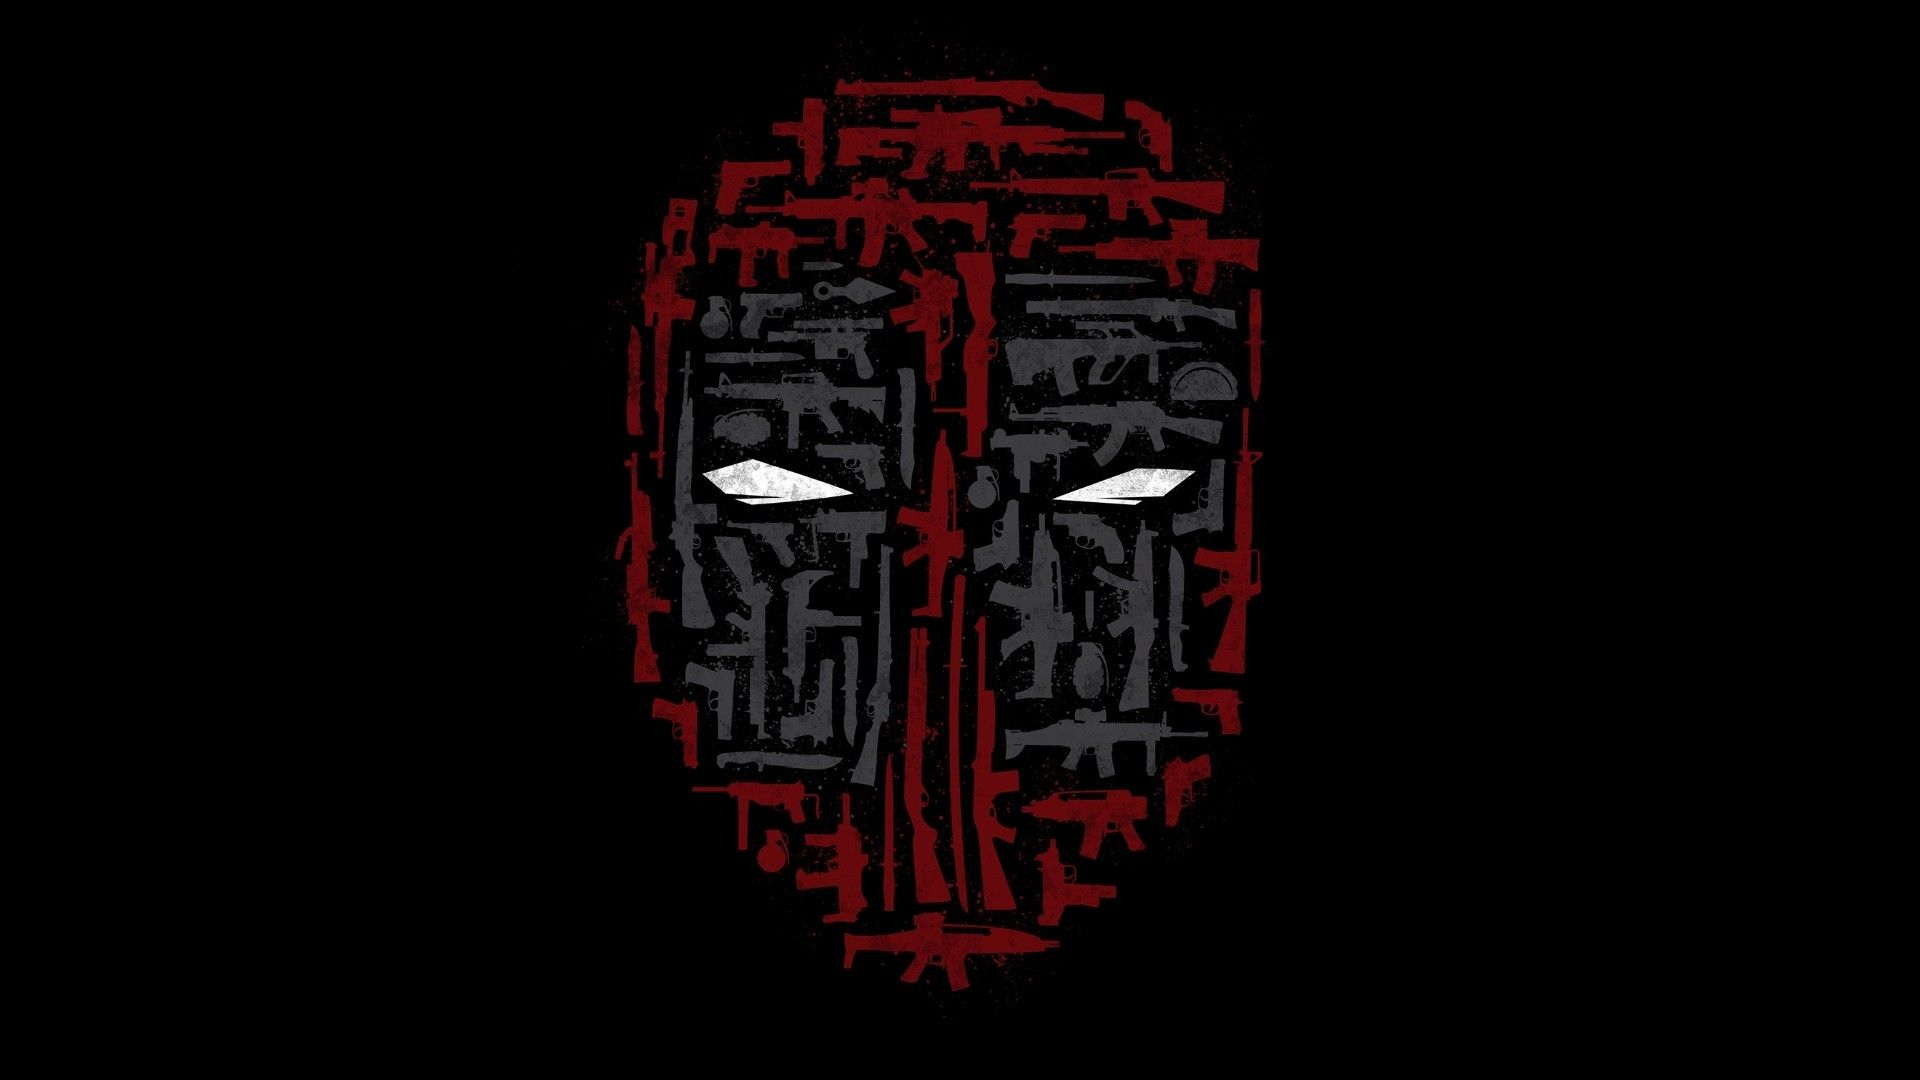 1920x1080 Deadpool, Weapon, Mask, Minimalism, Collage Wallpapers ...